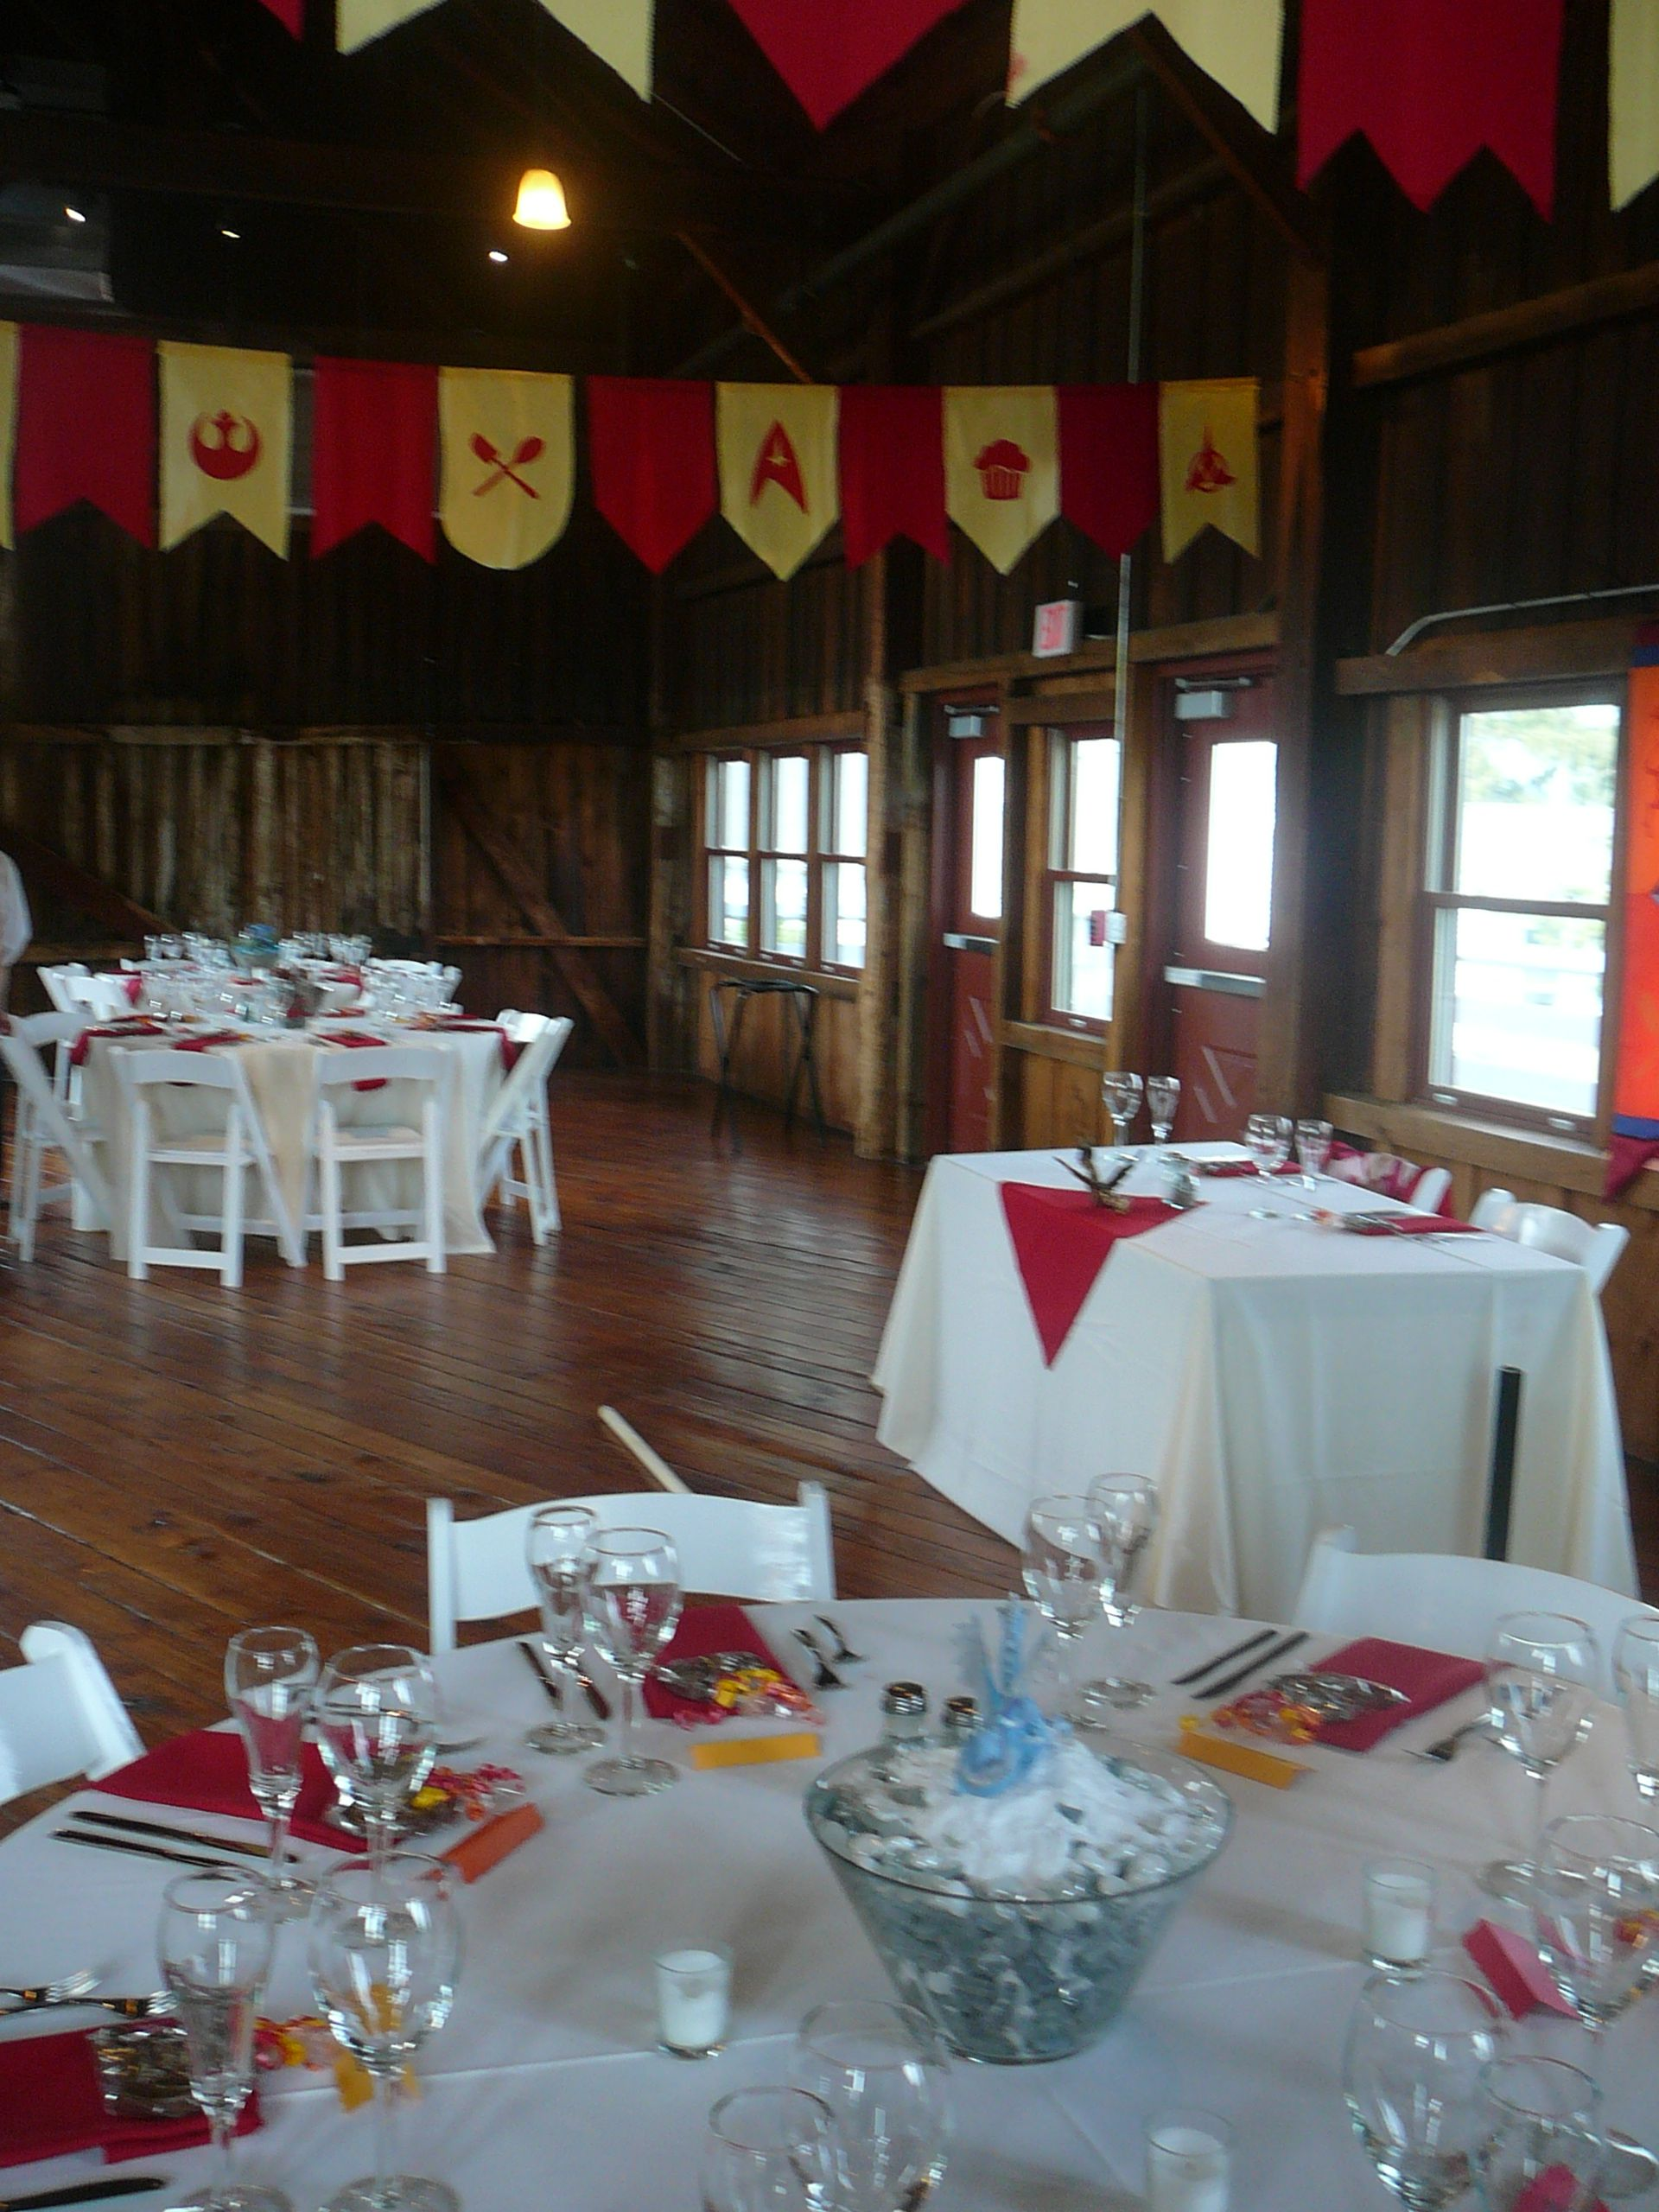 Wow A Medieval Themed Wedding In The Red Barn Check Out Those